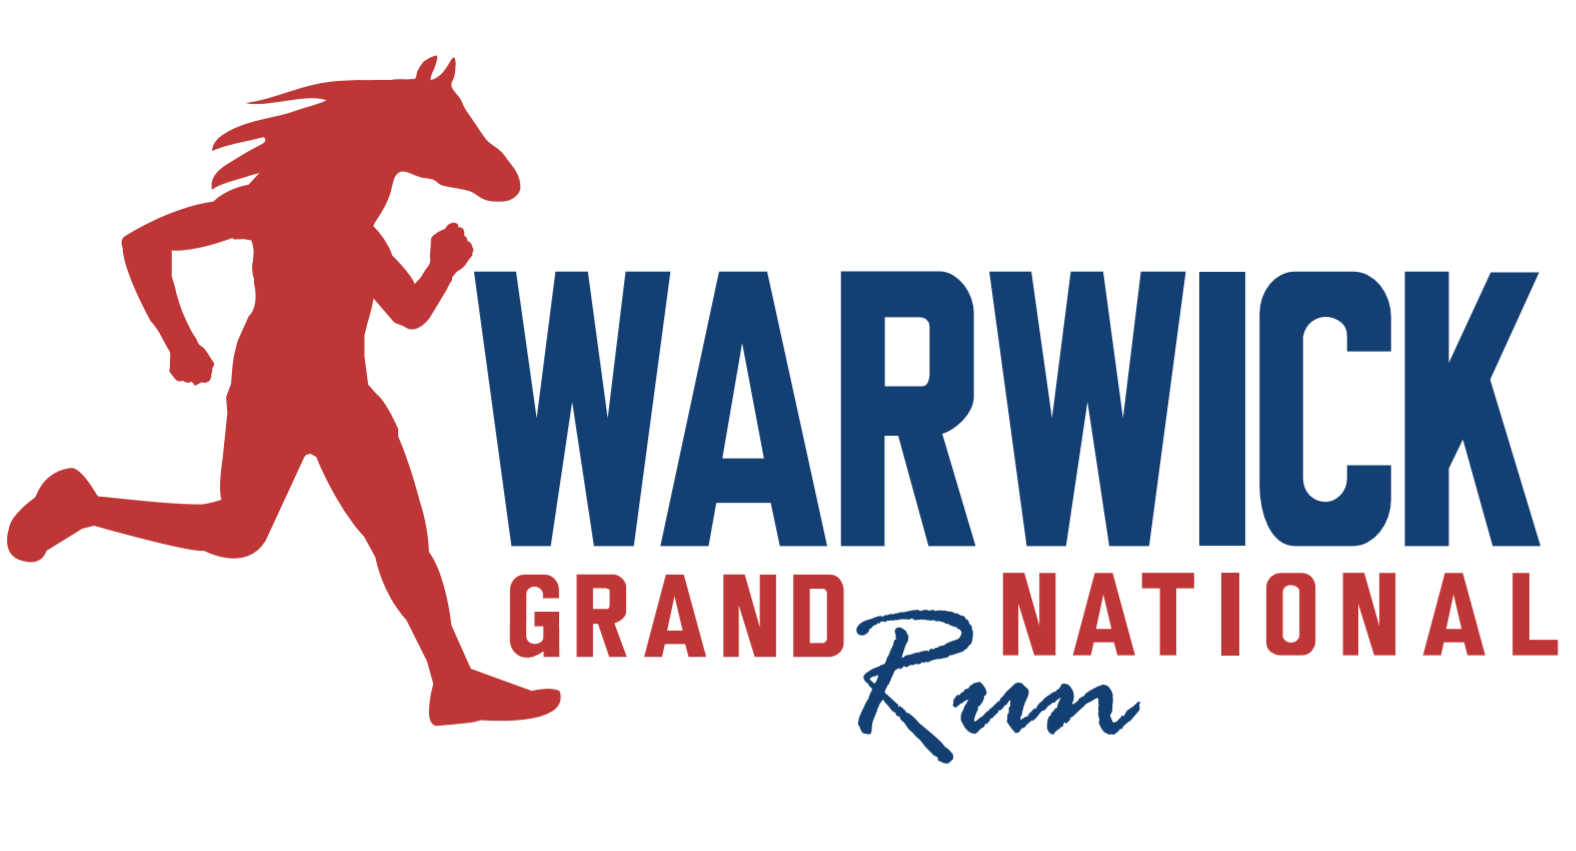 Run the length of the Grand National in Warwick